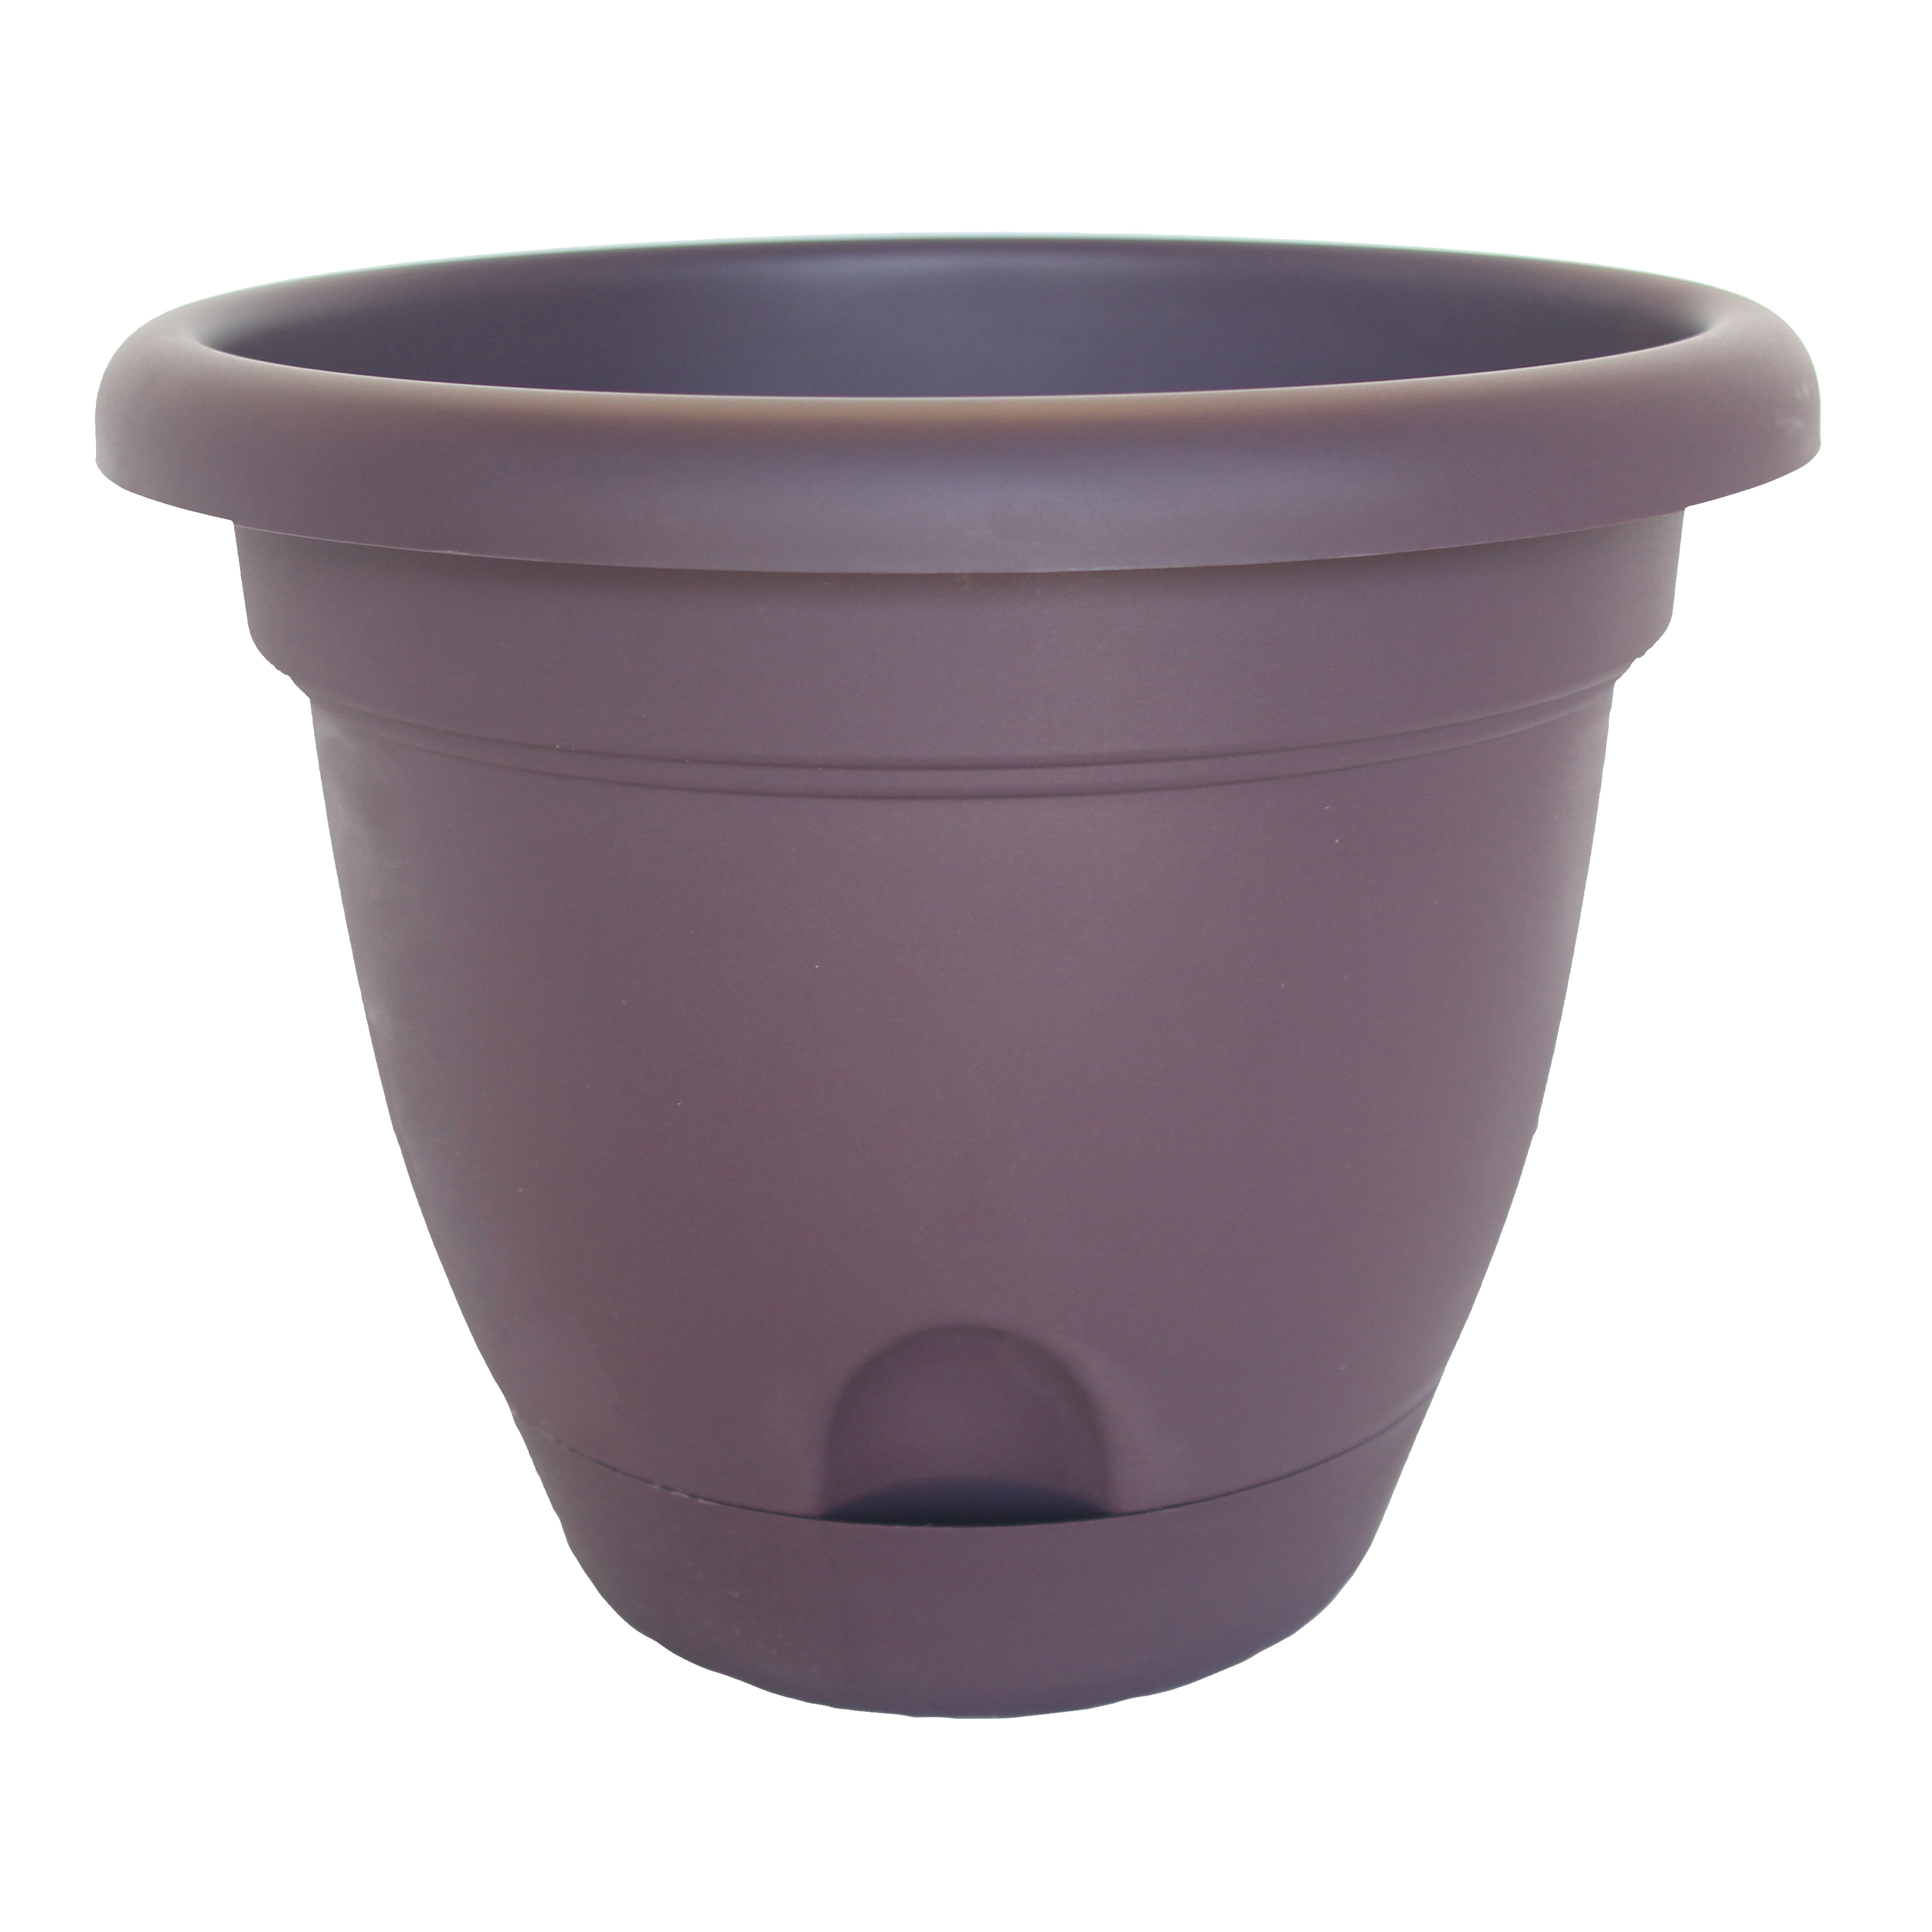 Picture of Bloem Lucca LP0656 Planter, 5.3 in W, Polypropylene, Exotica